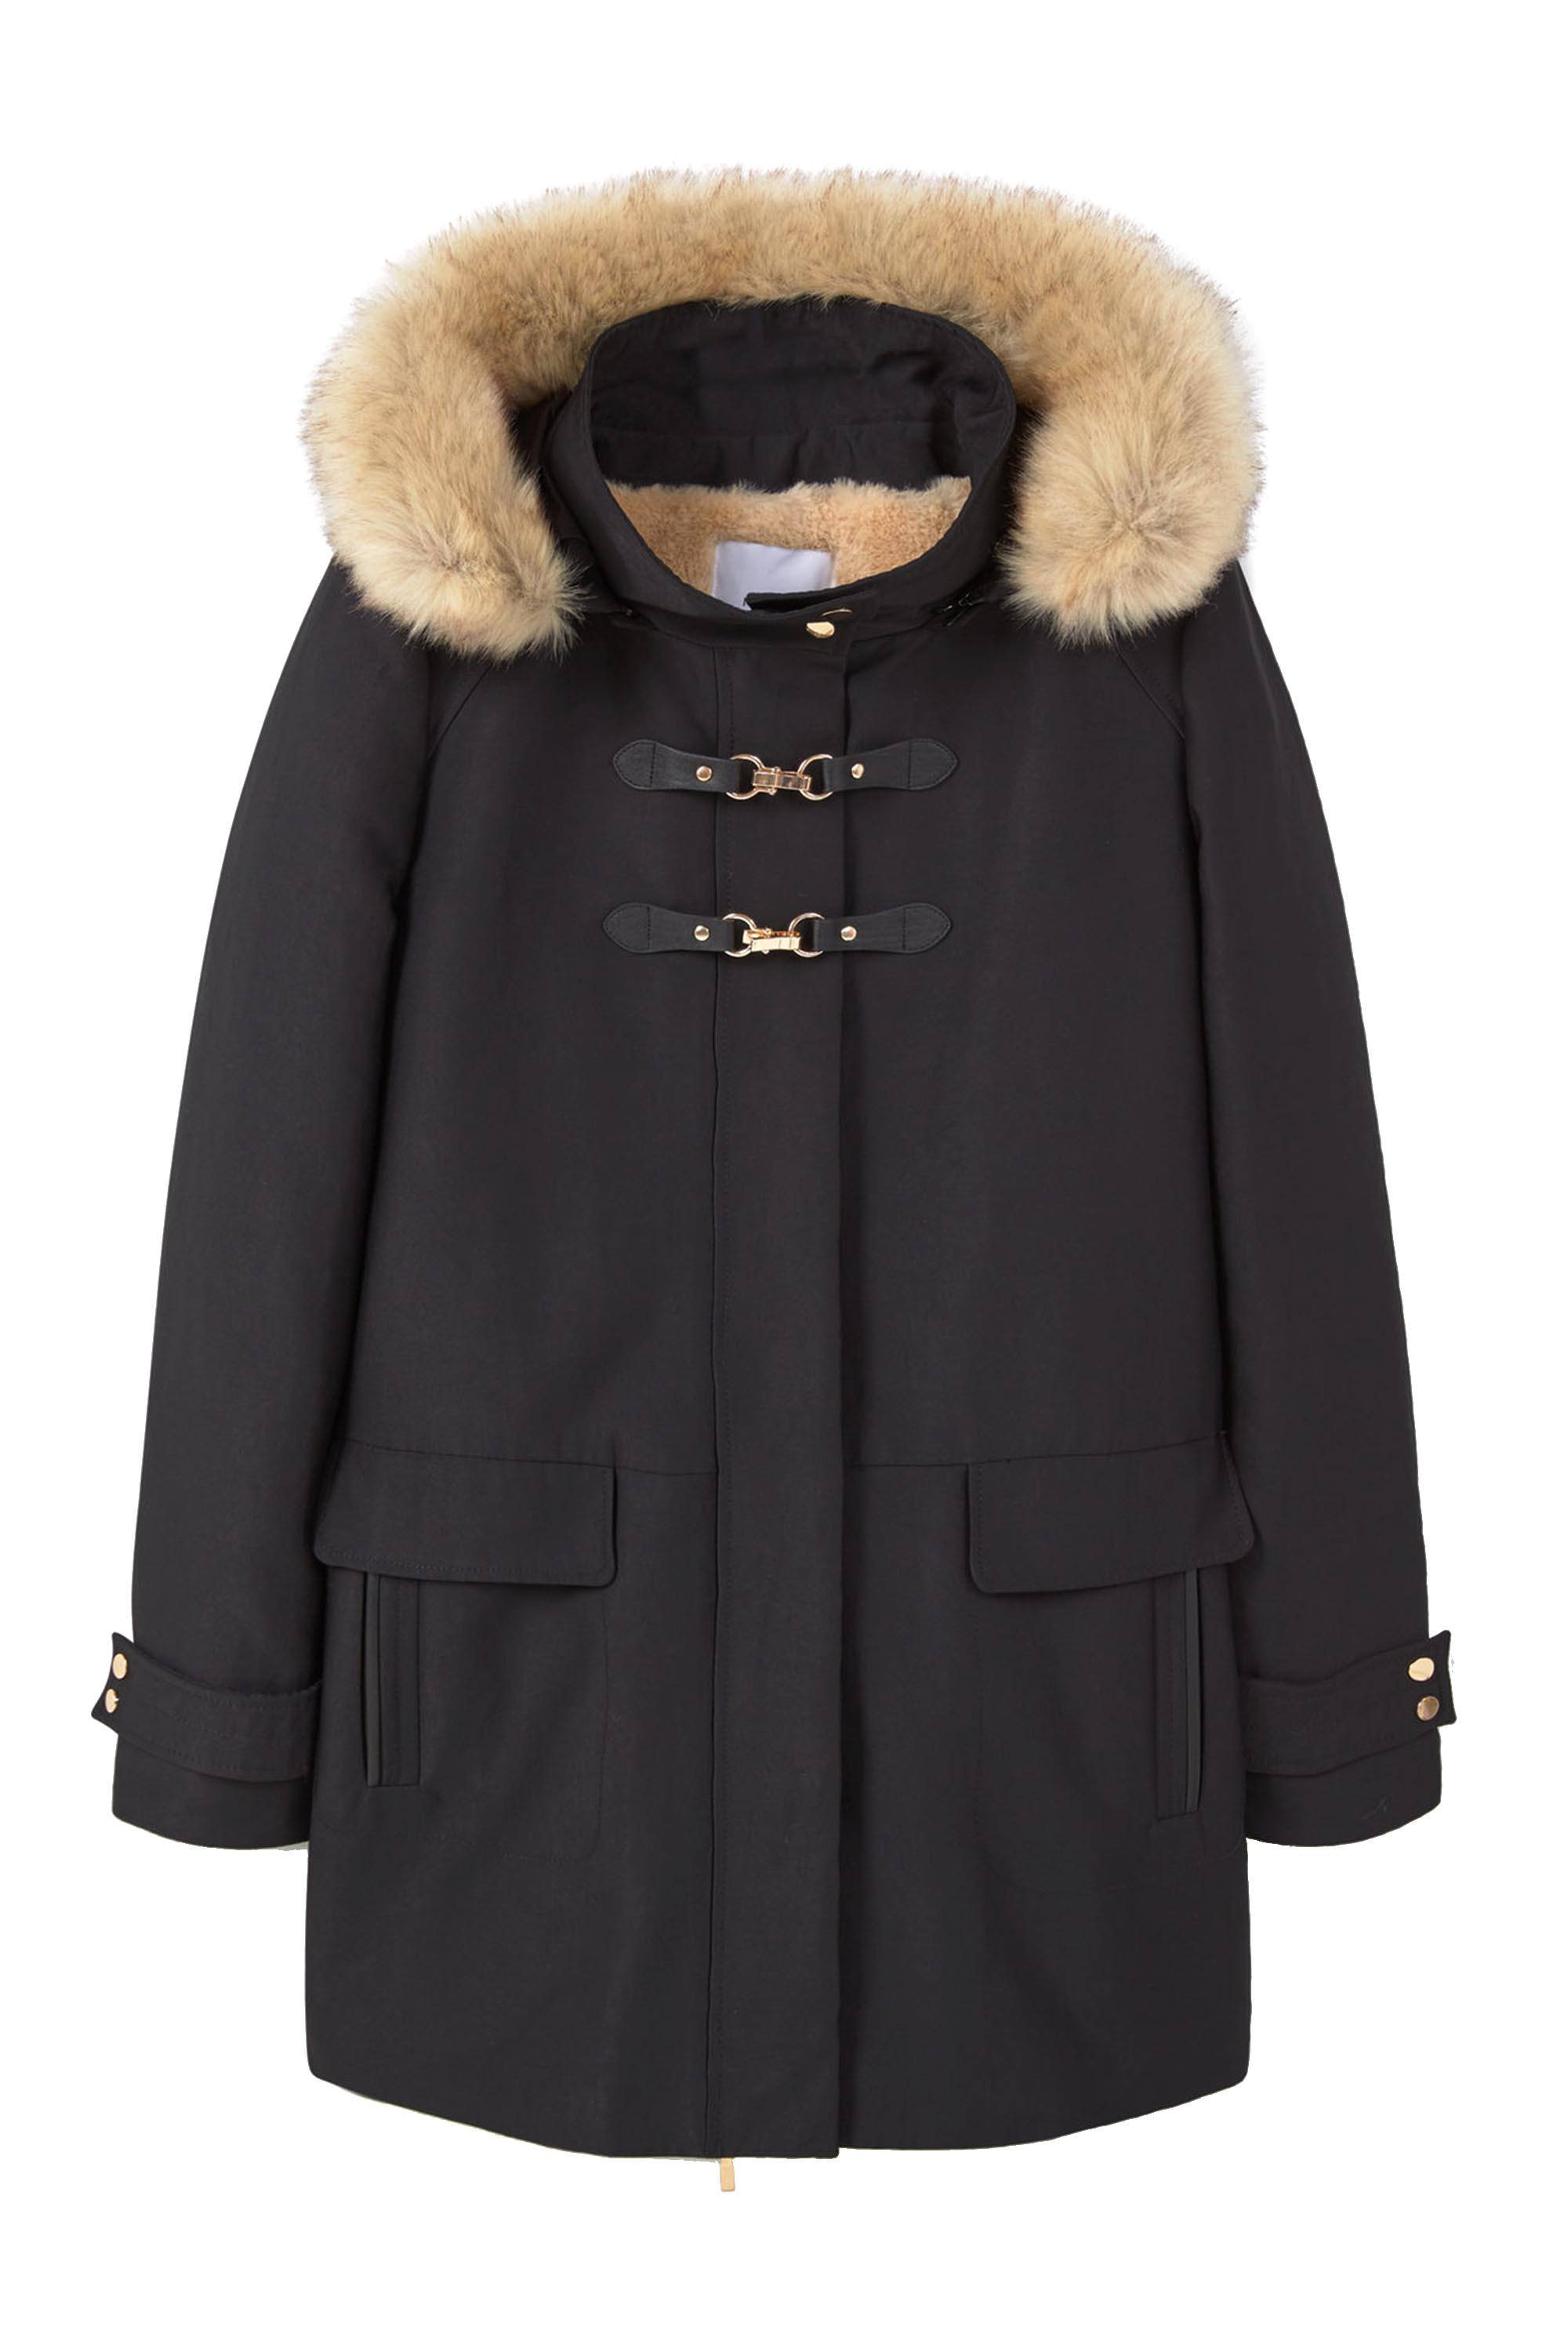 Brands Of Winter Coats - Tradingbasis